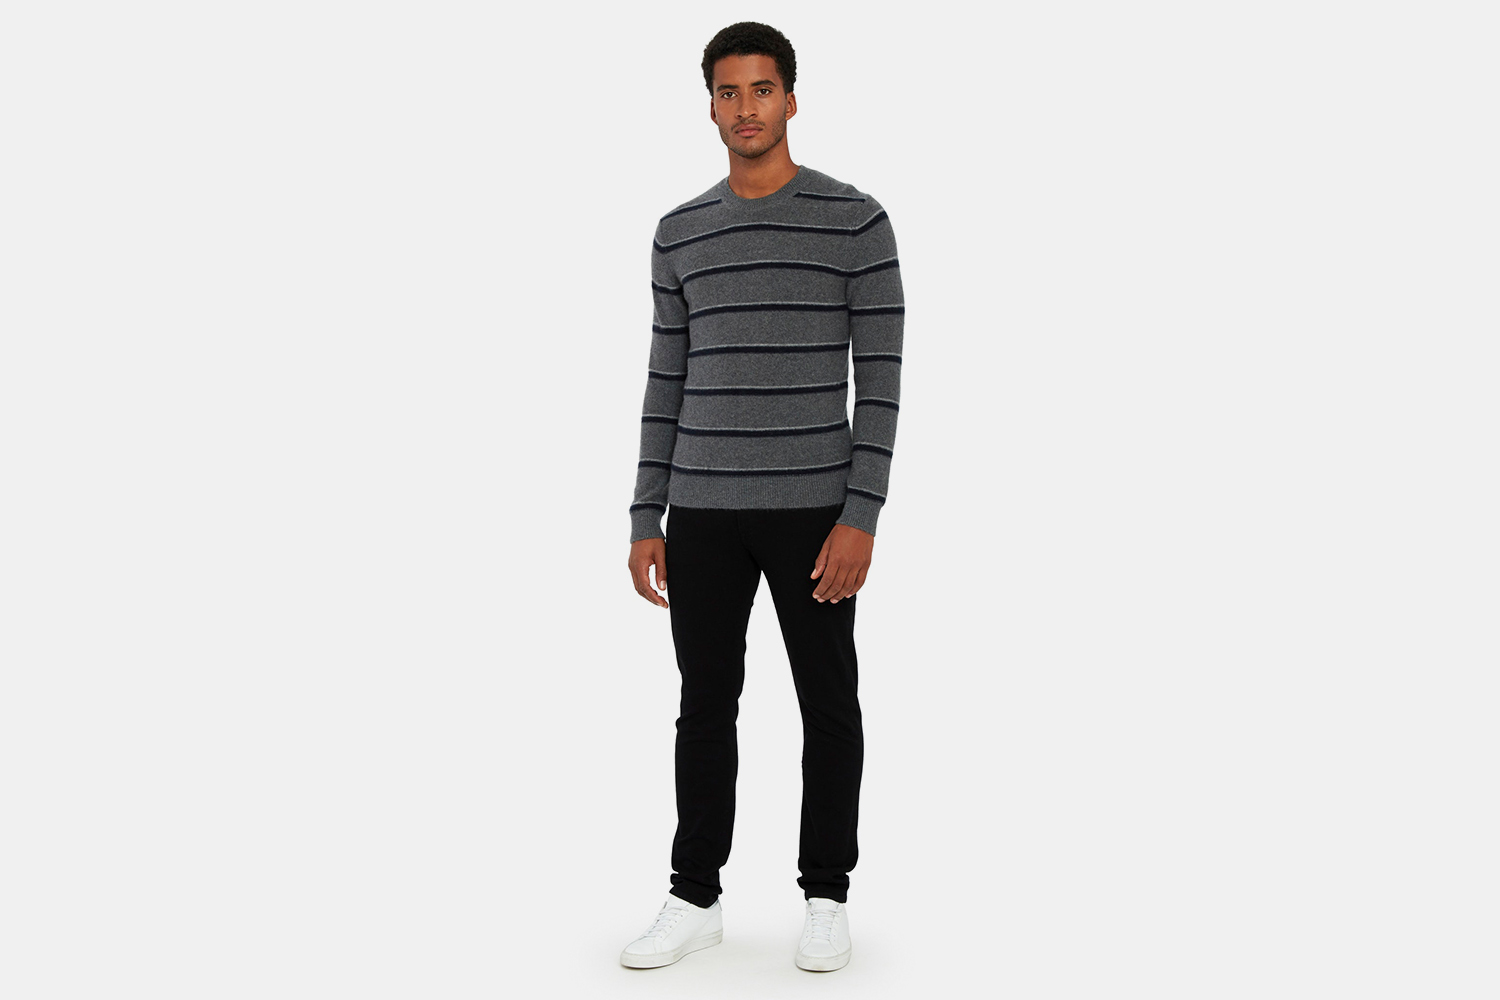 Deal: Take 20% Off Vince Sale Items at Verishop